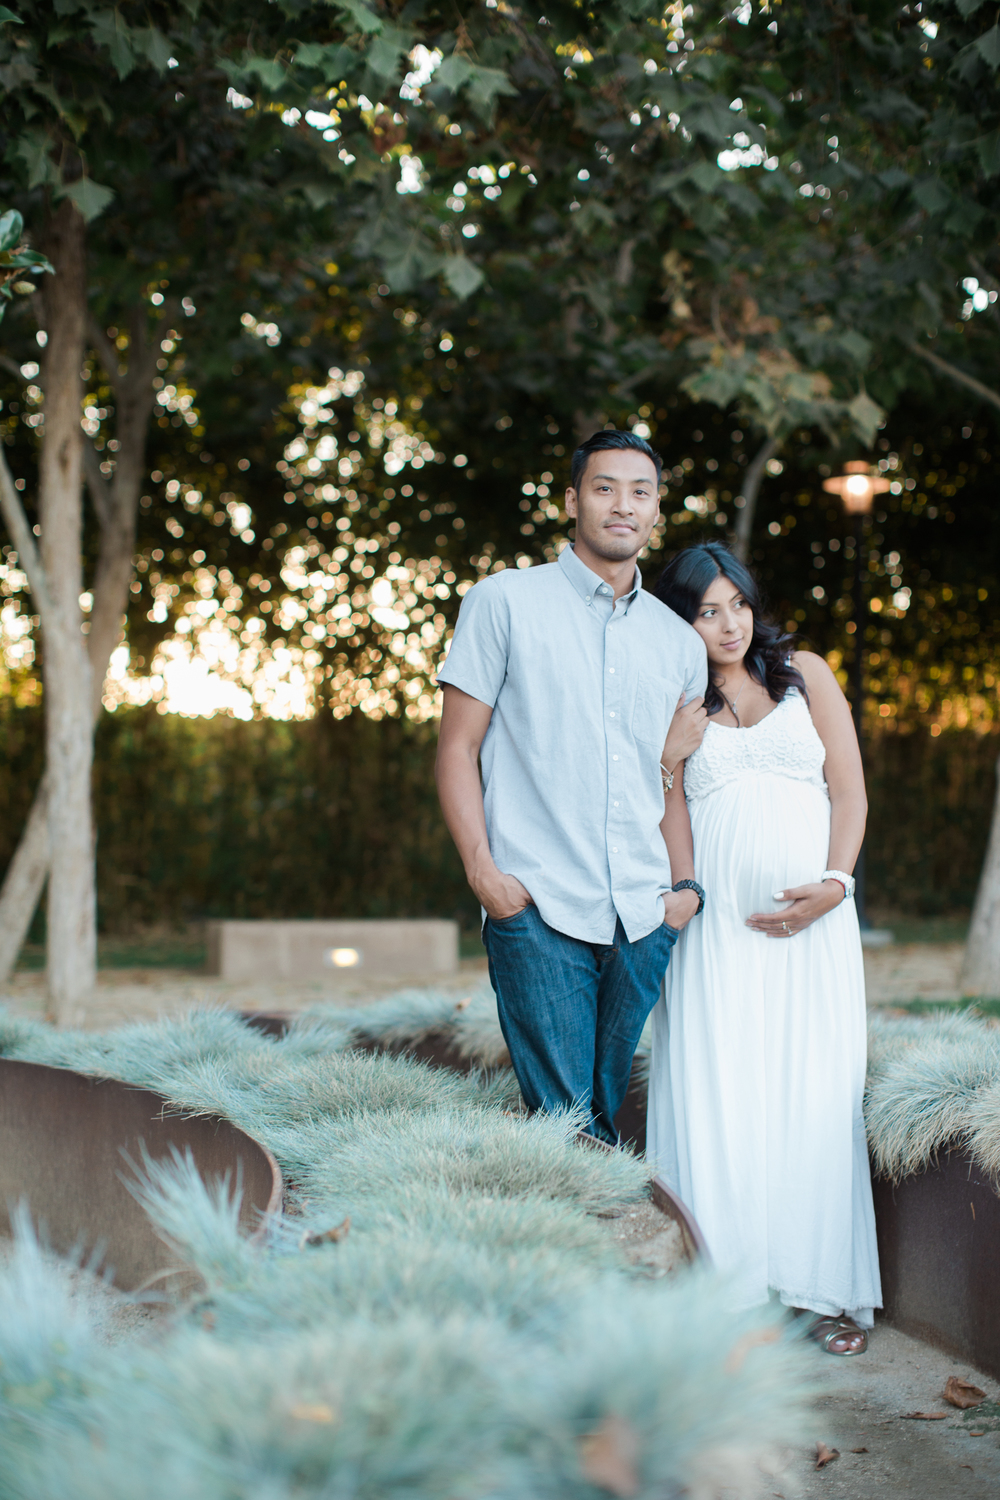 Marcella_Maternity_Cerritos_BrandonJFerlin_Photography-90.jpg